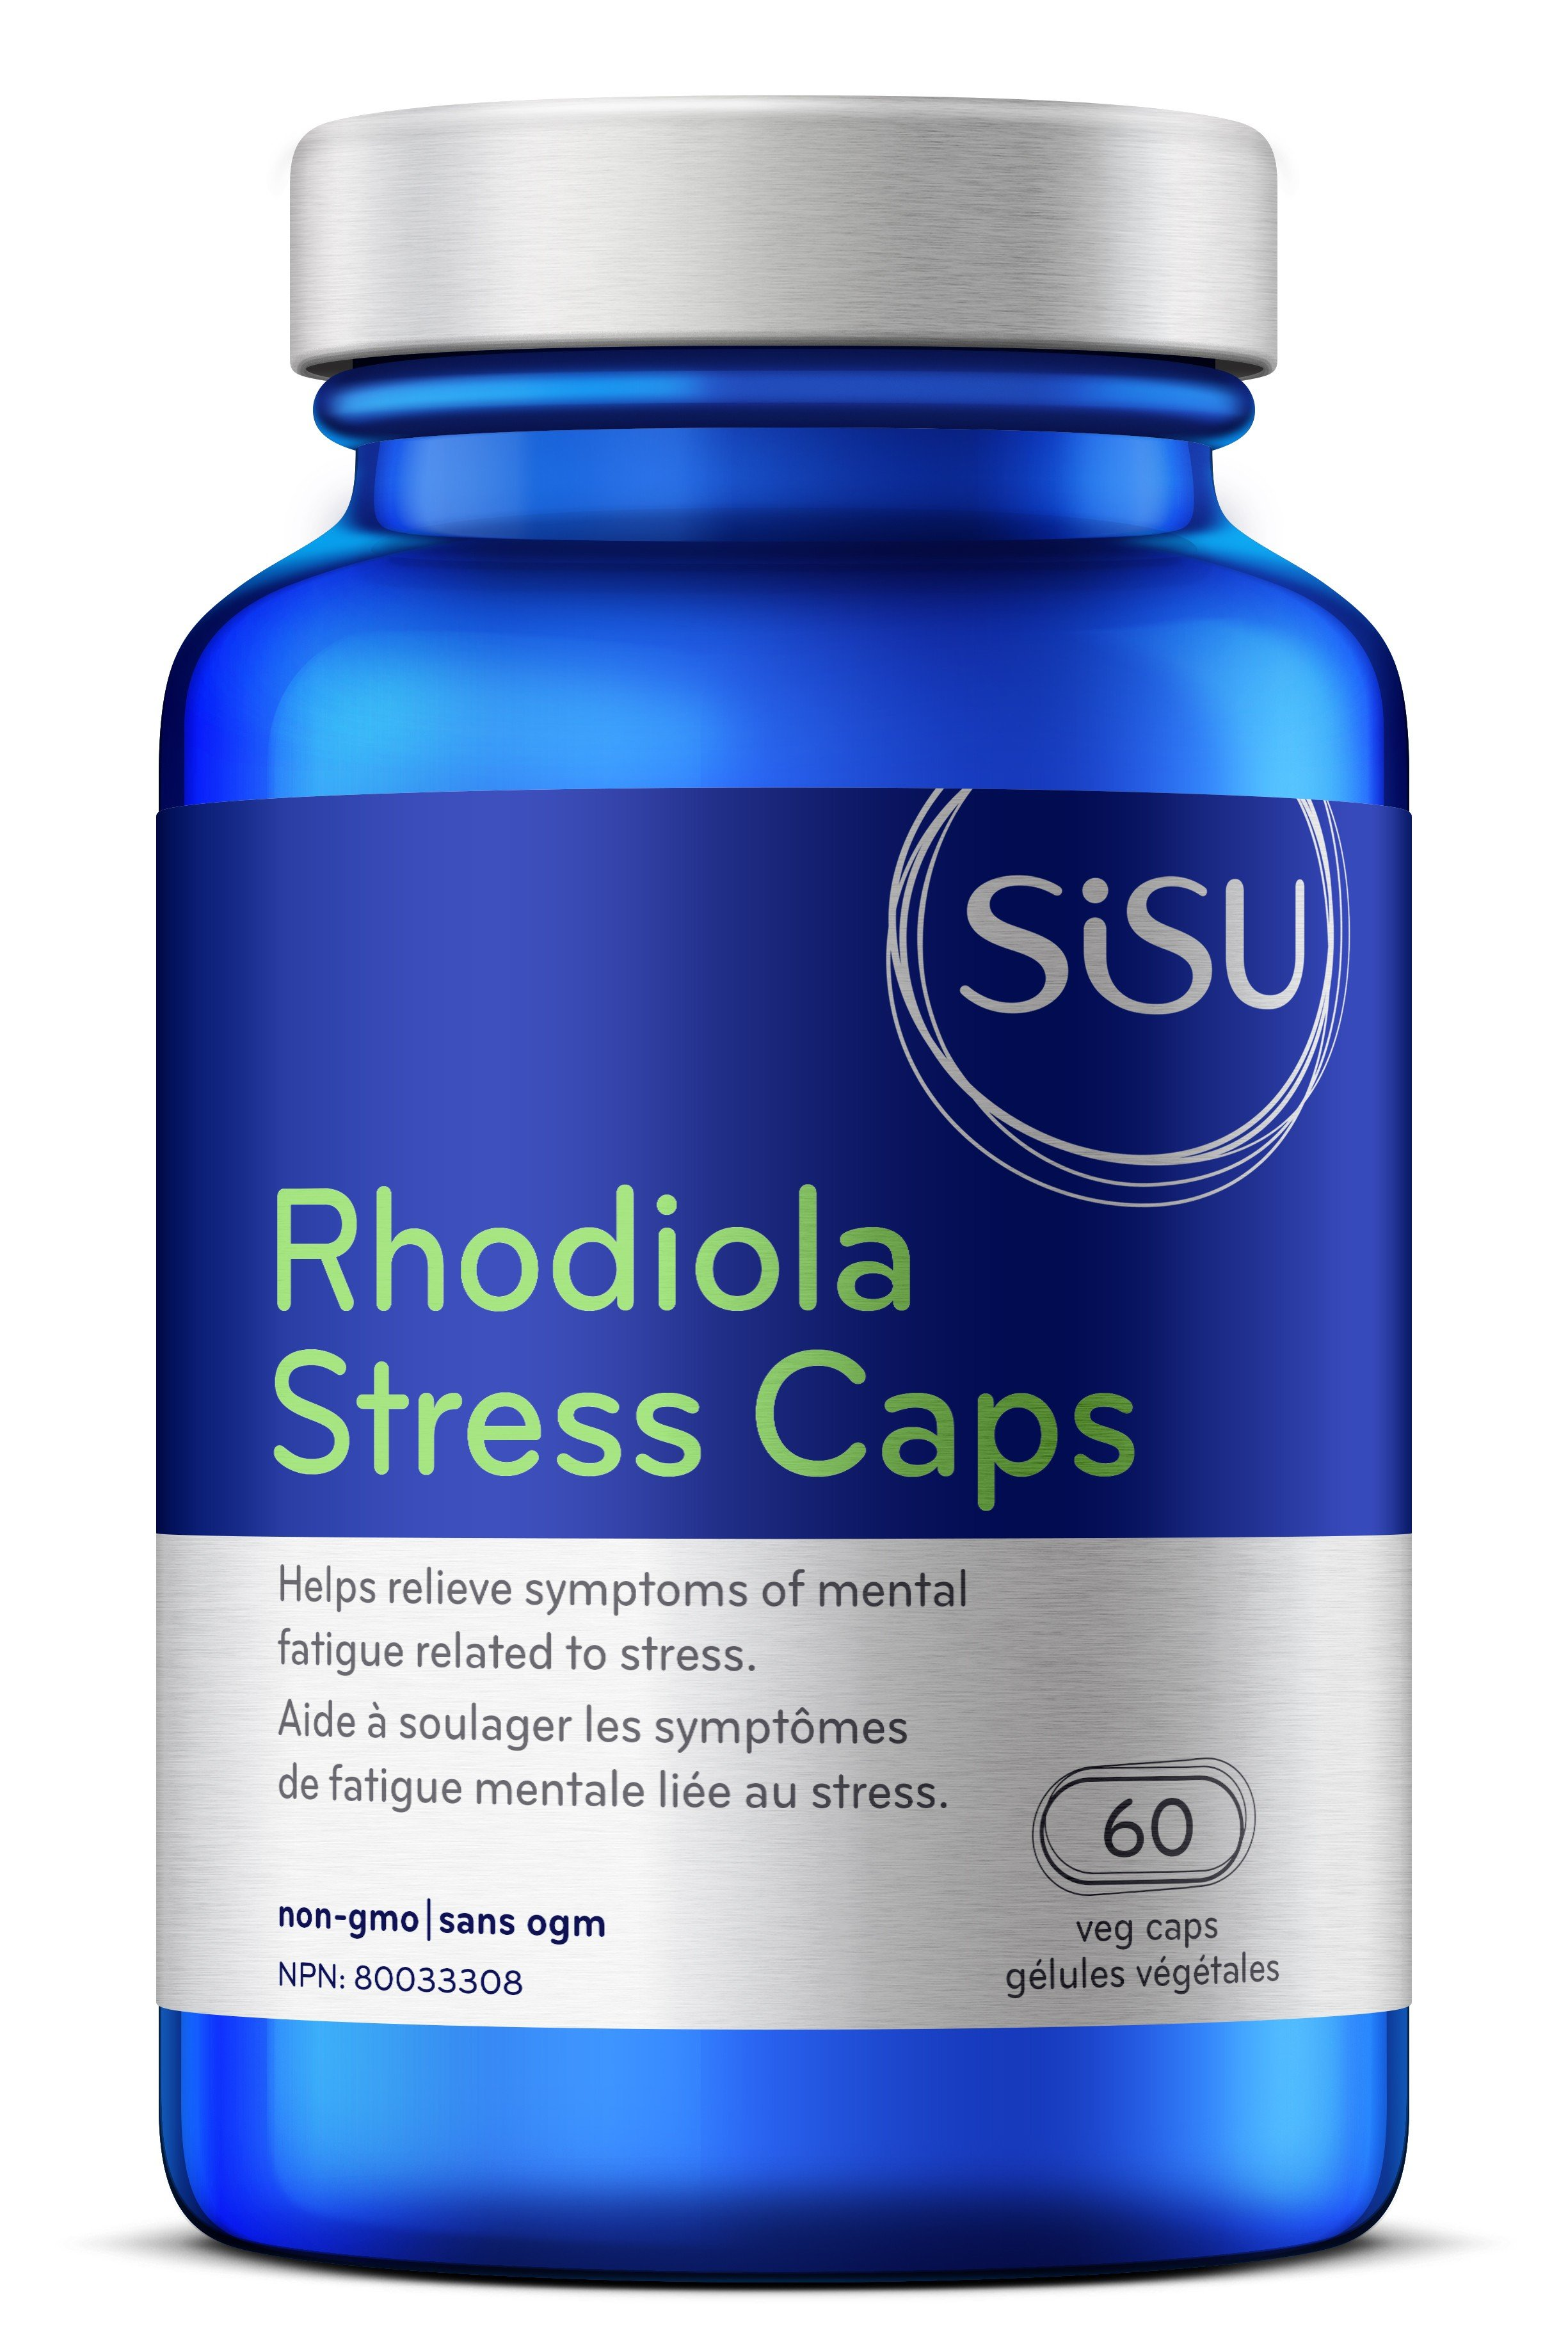 Rhodiola Stress Caps Can Help Reduce Your Stress And Normalize Hormone Production